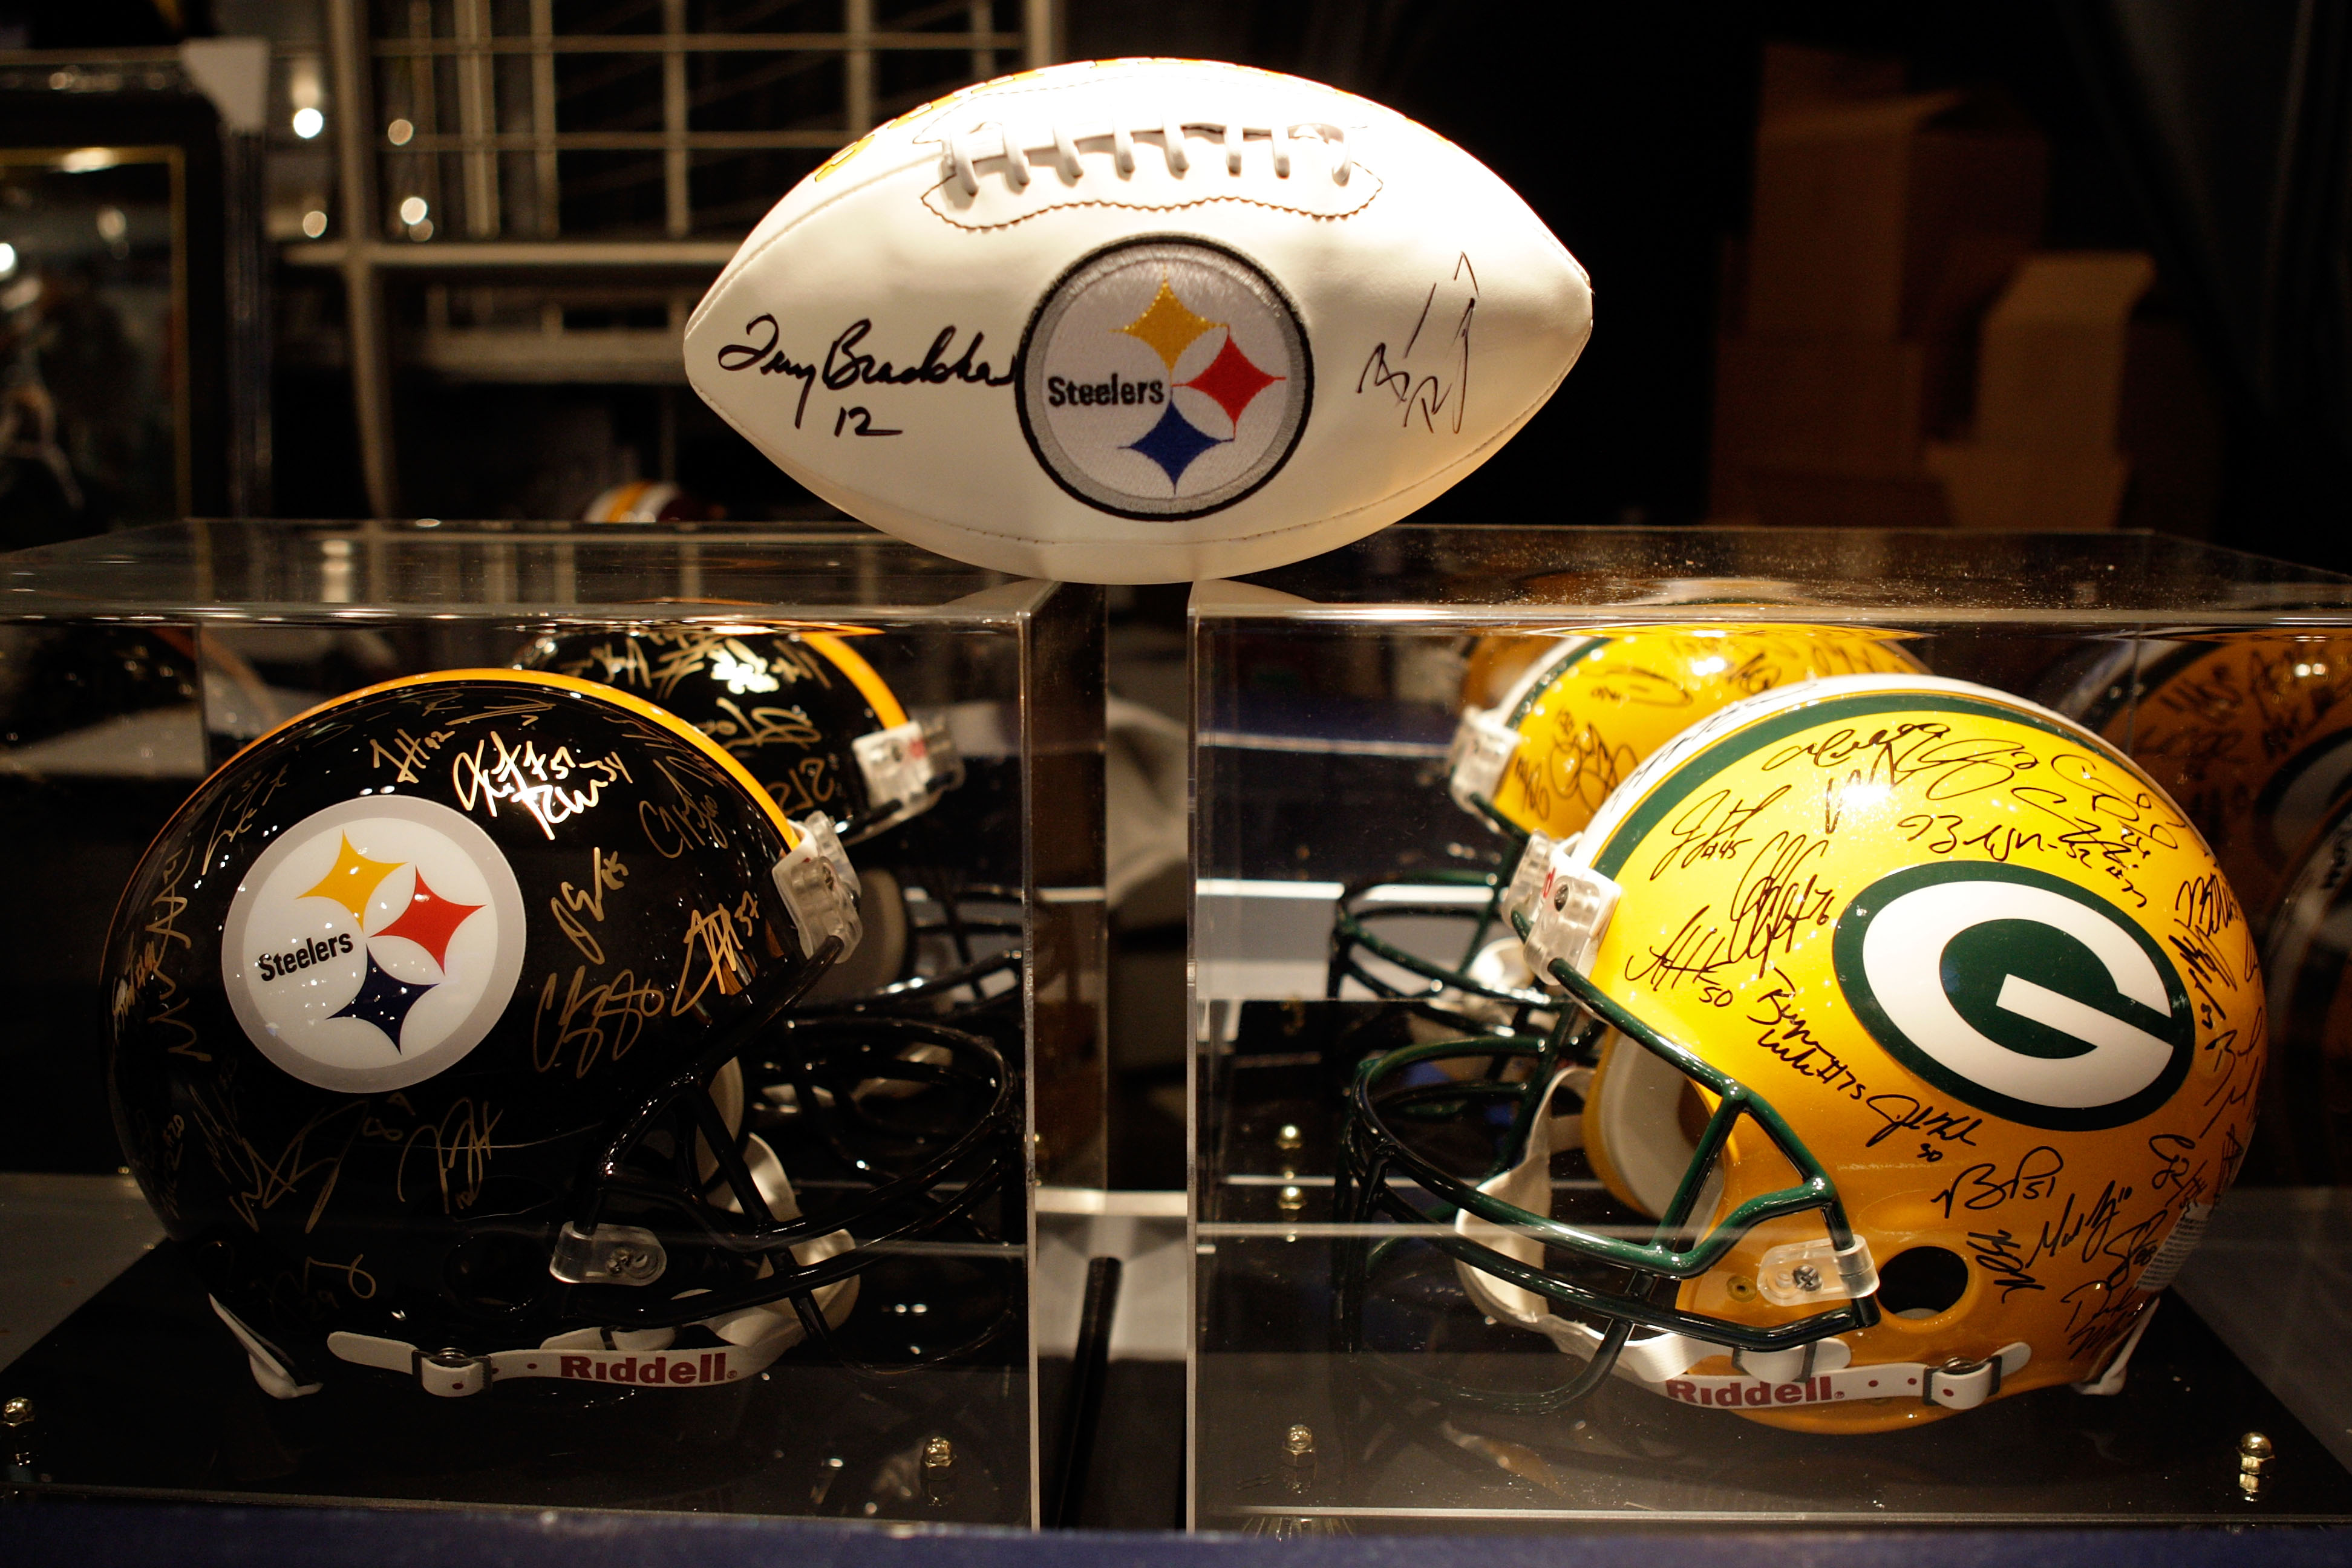 ARLINGTON, TX - FEBRUARY 06:  Signed Pittsburgh Steelers and Green Bay Packers helmets and footballs are displayed inside the Pro Shop at Cowboys Stadium before Super Bowl XLV on February 6, 2011 in Arlington, Texas.  (Photo by Jamie Squire/Getty Images)